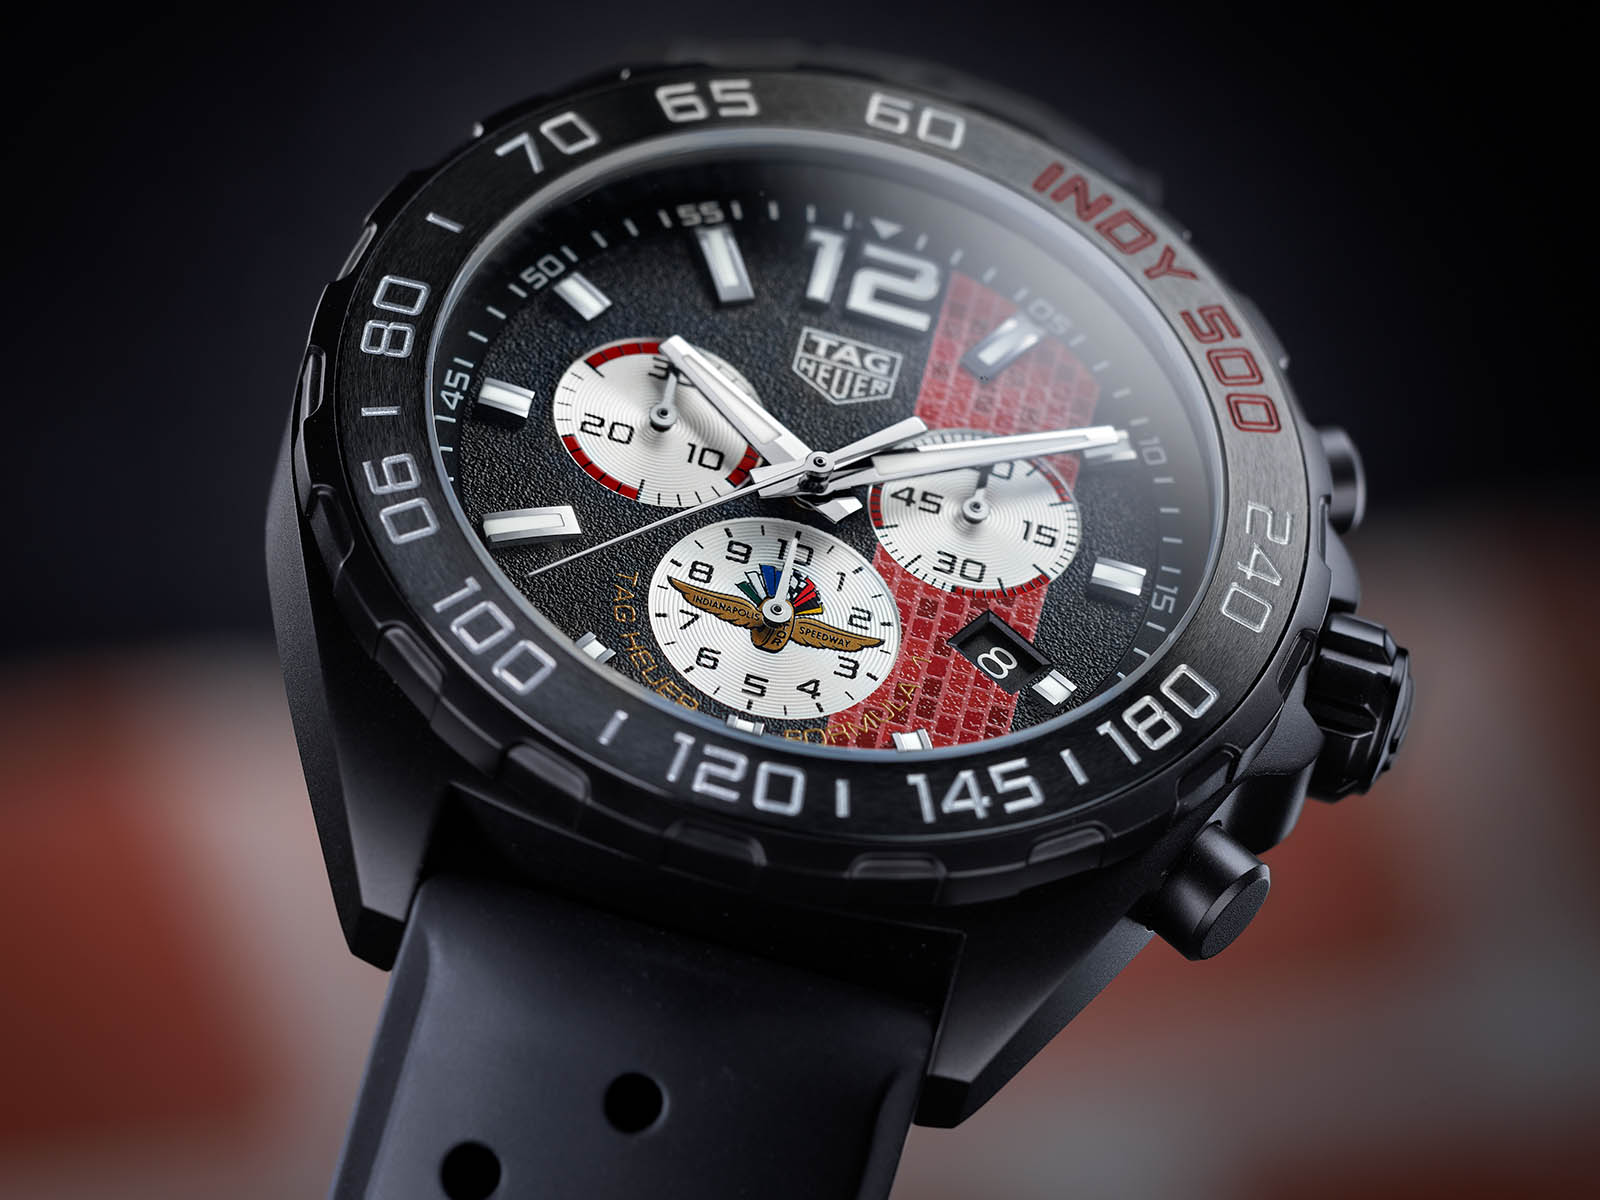 caz101ad-ft8024-tag-heuer-formula-1-indy-500-2020-special-edition-4.jpg